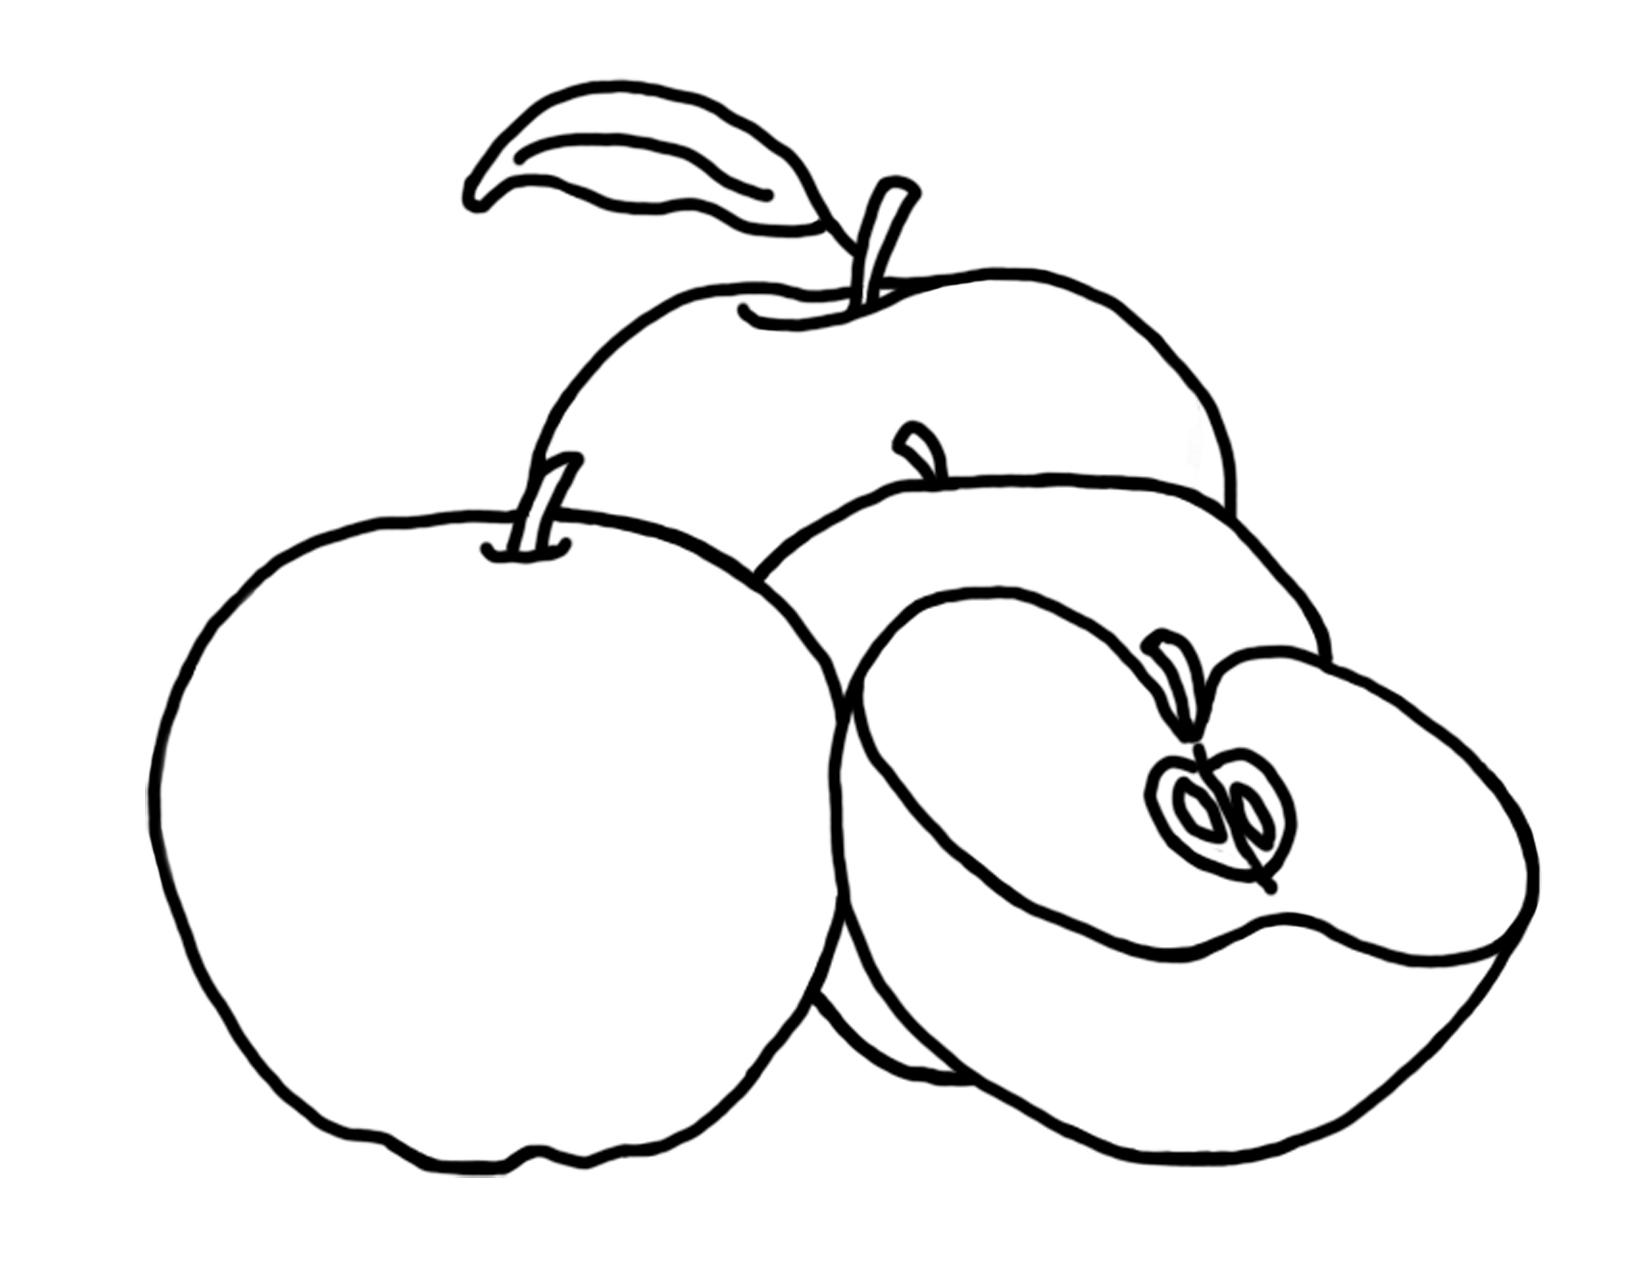 coloring page of an apple apple coloring pages fotolipcom rich image and wallpaper of coloring apple an page